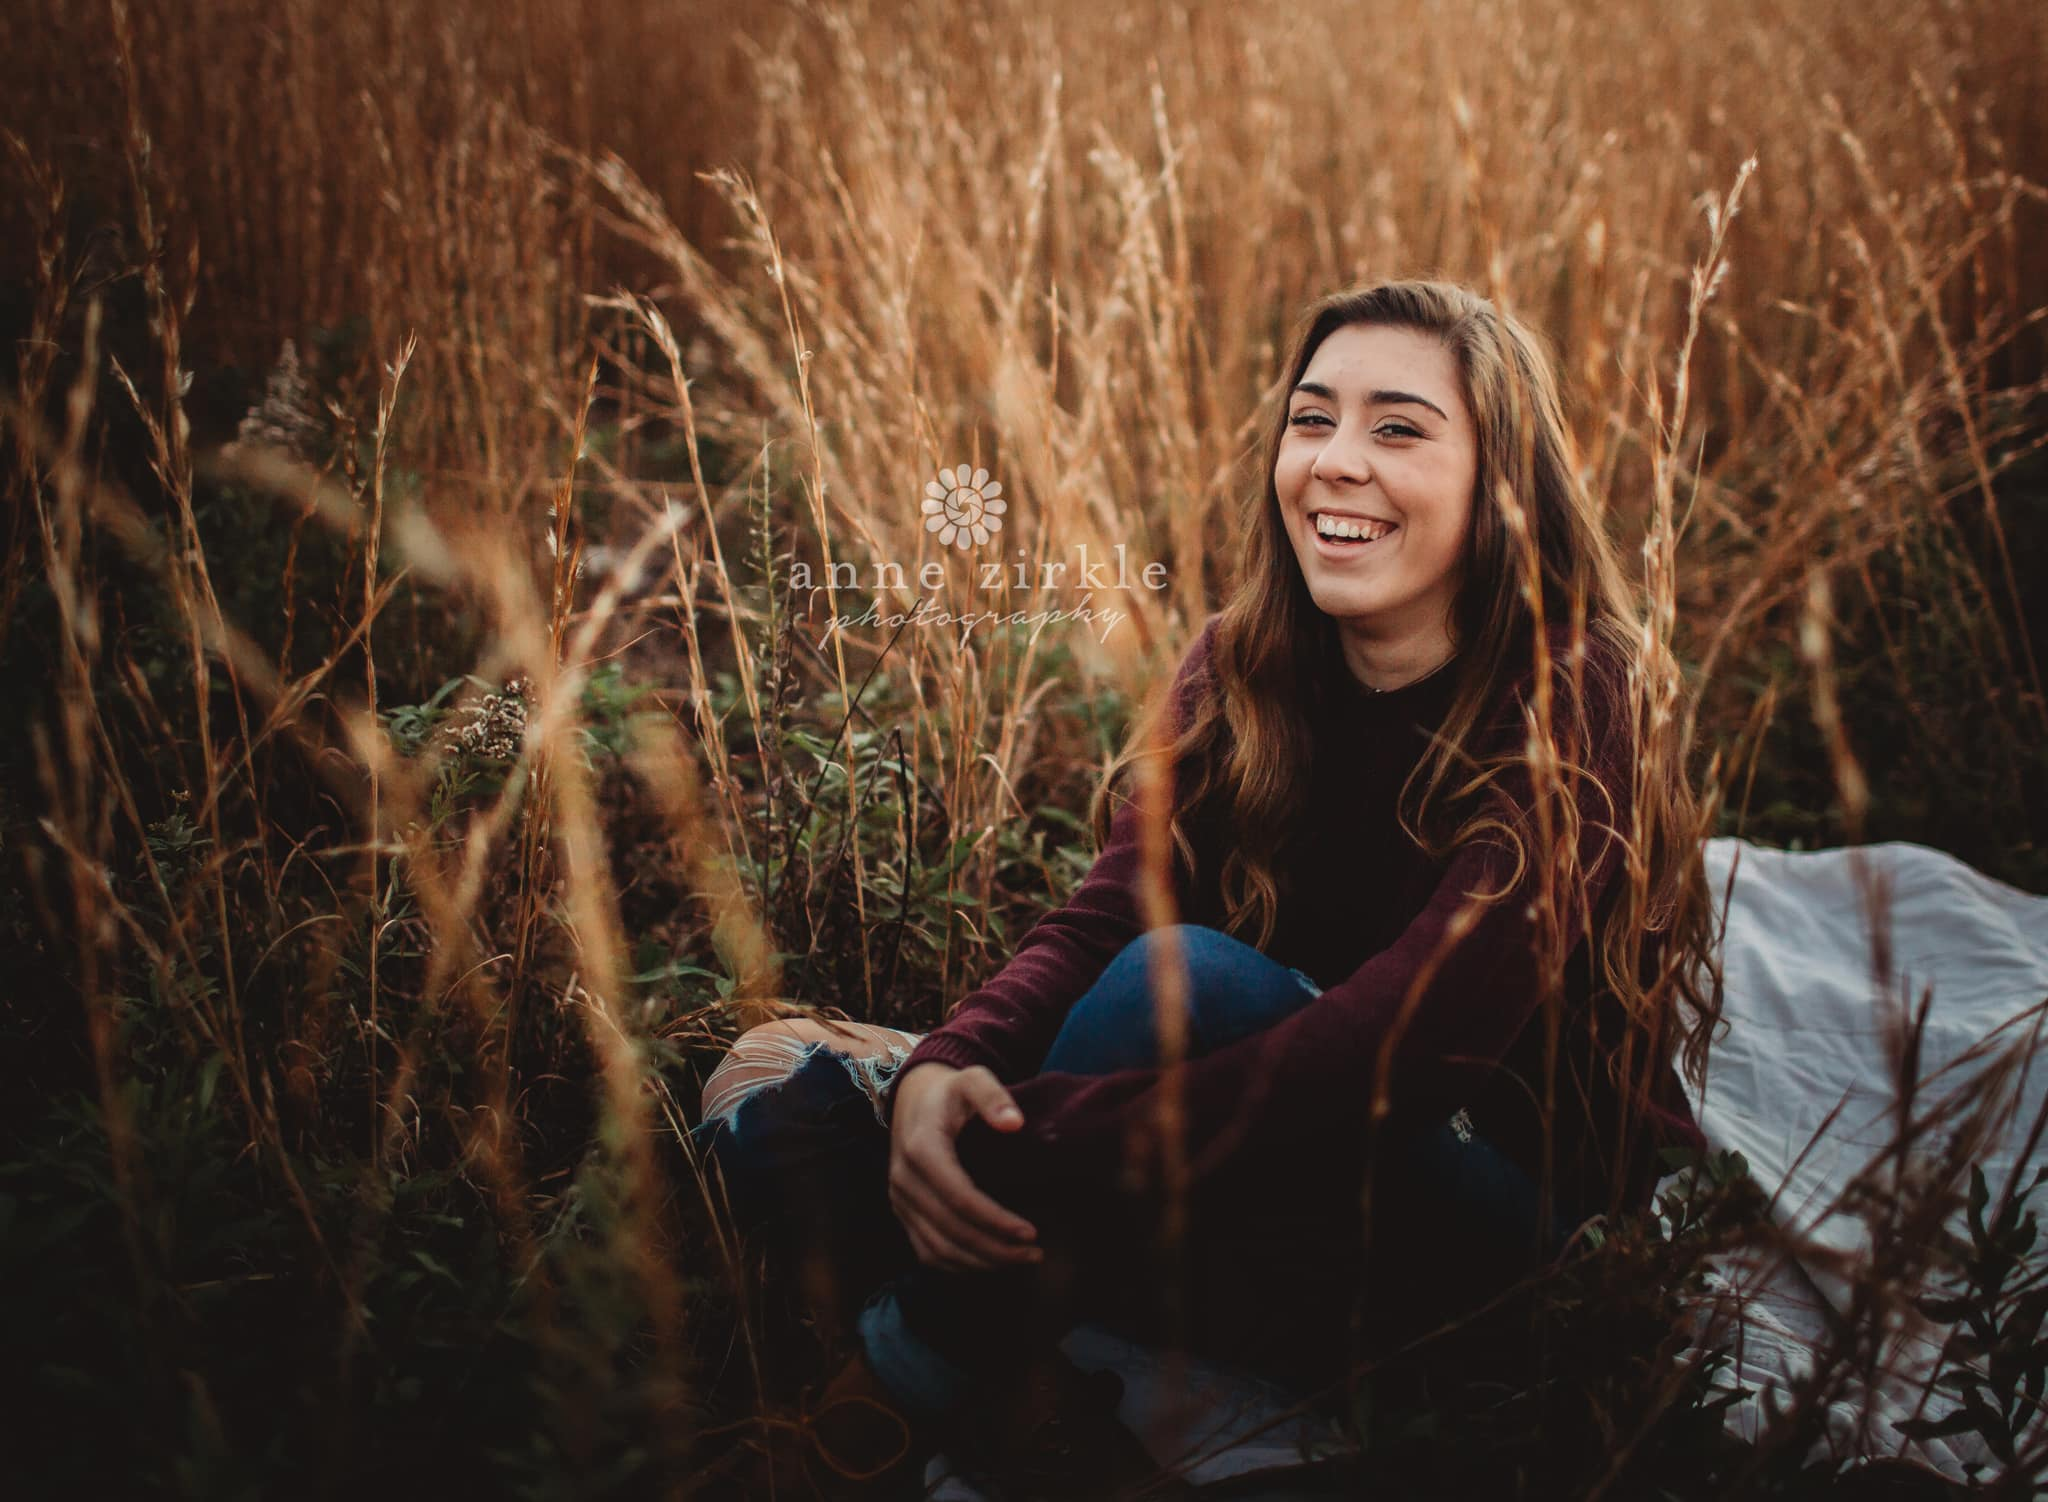 senior girl laughing in autumn field